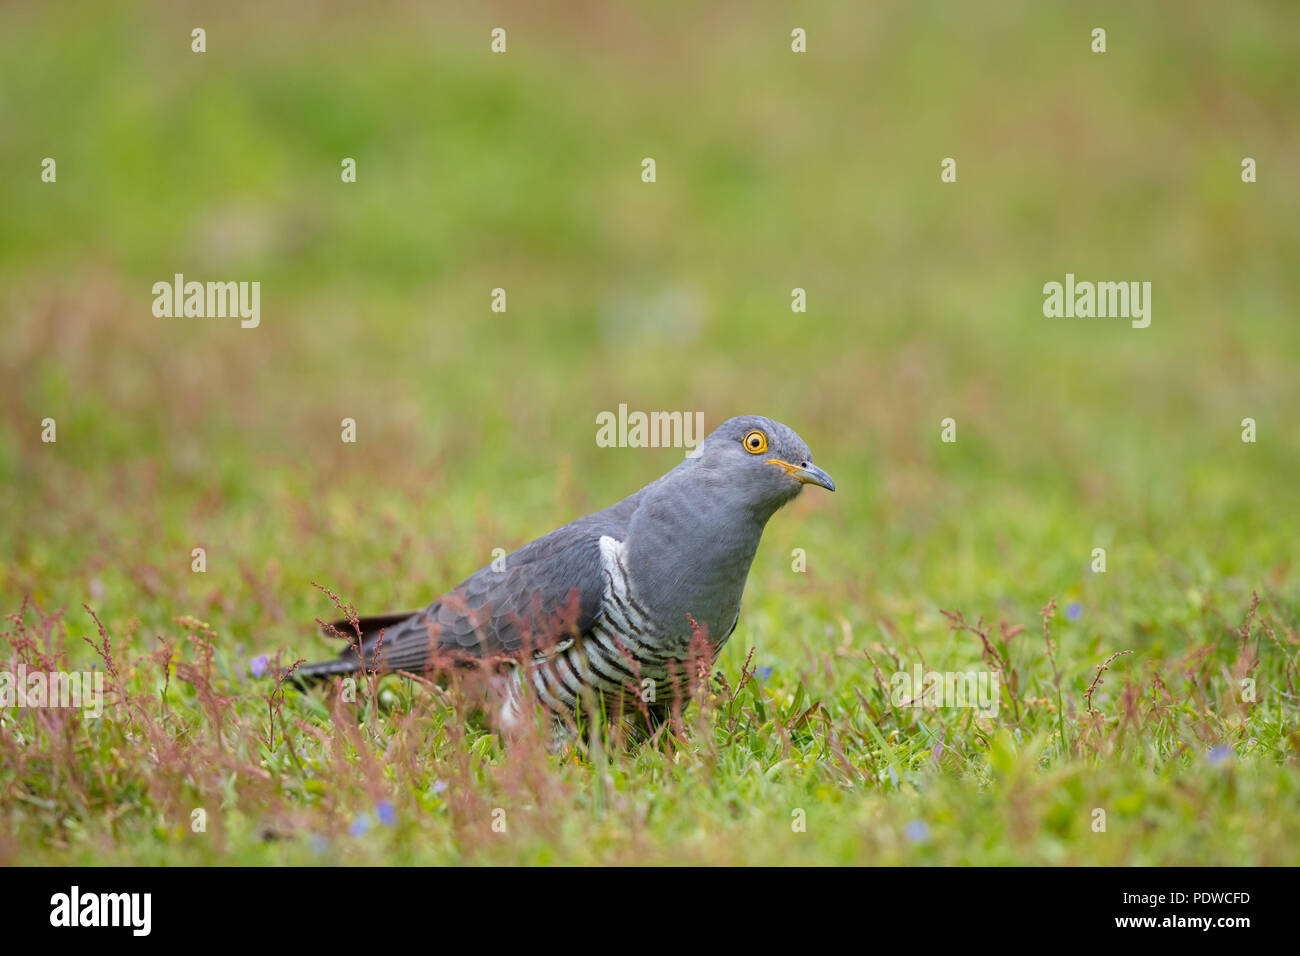 Male cuckoo resting in the grass - Stock Image